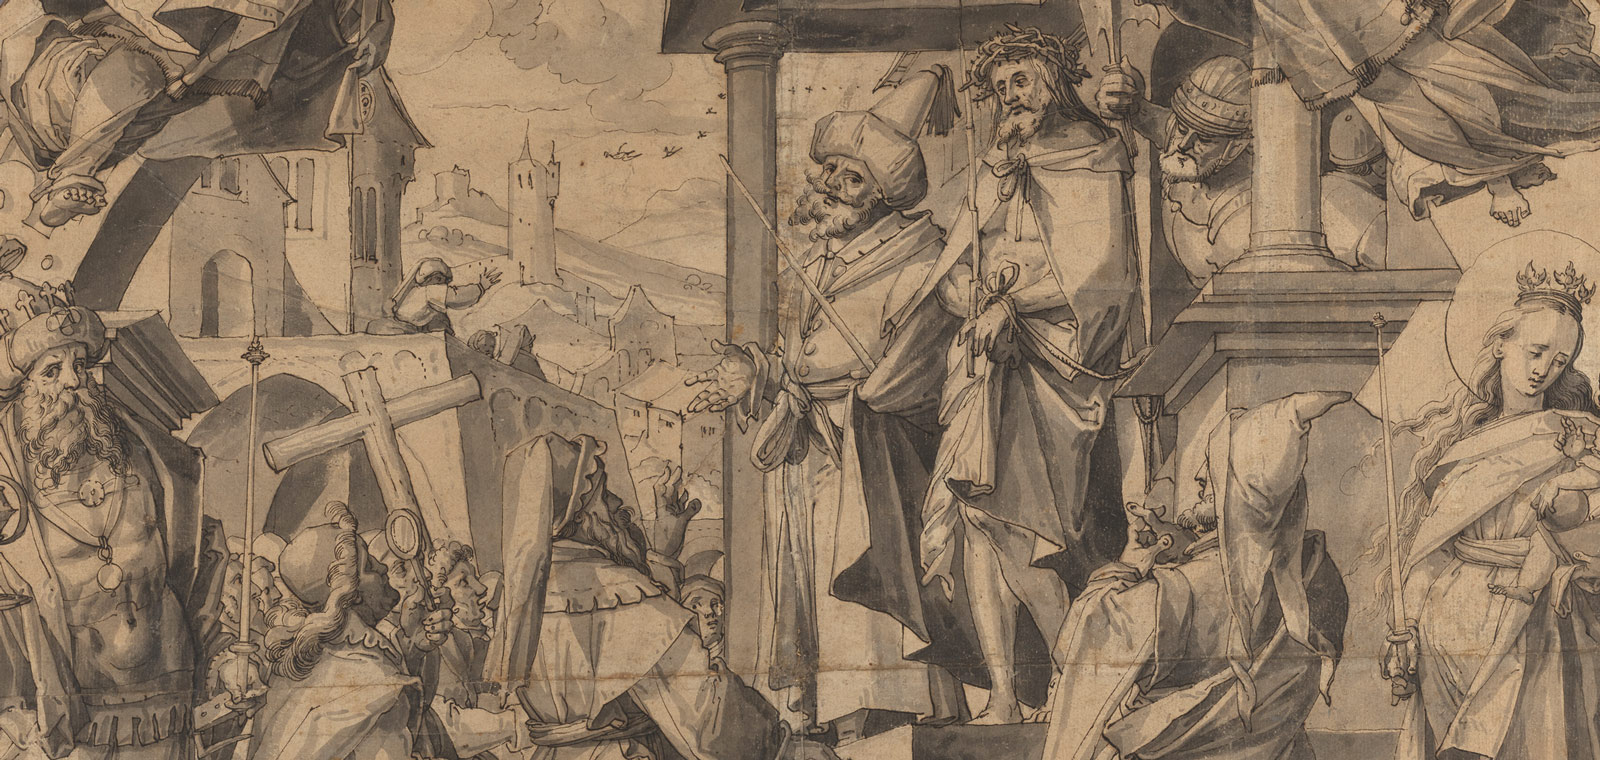 Detail of a sketch of a busy tumultuous scene with Christ at the center, a man next to him speaking to a crowd with castles in the background and a crying Mary with child to the right.